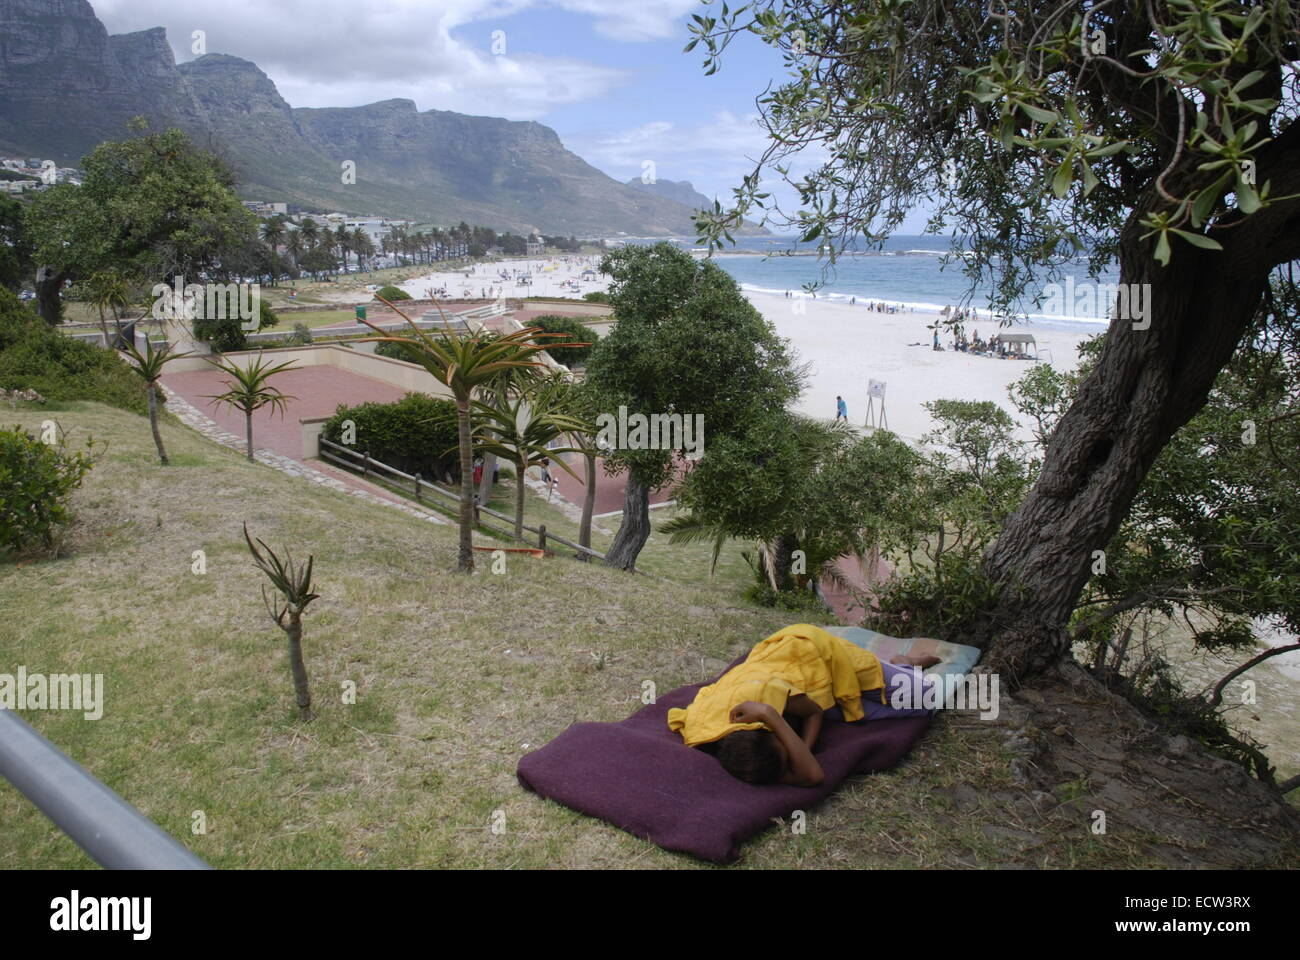 A homeless person sleeping under a tree near Camps Bay beach in Cape Town, South Africa. Picture by: Adam Alexander/Alamy - Stock Image